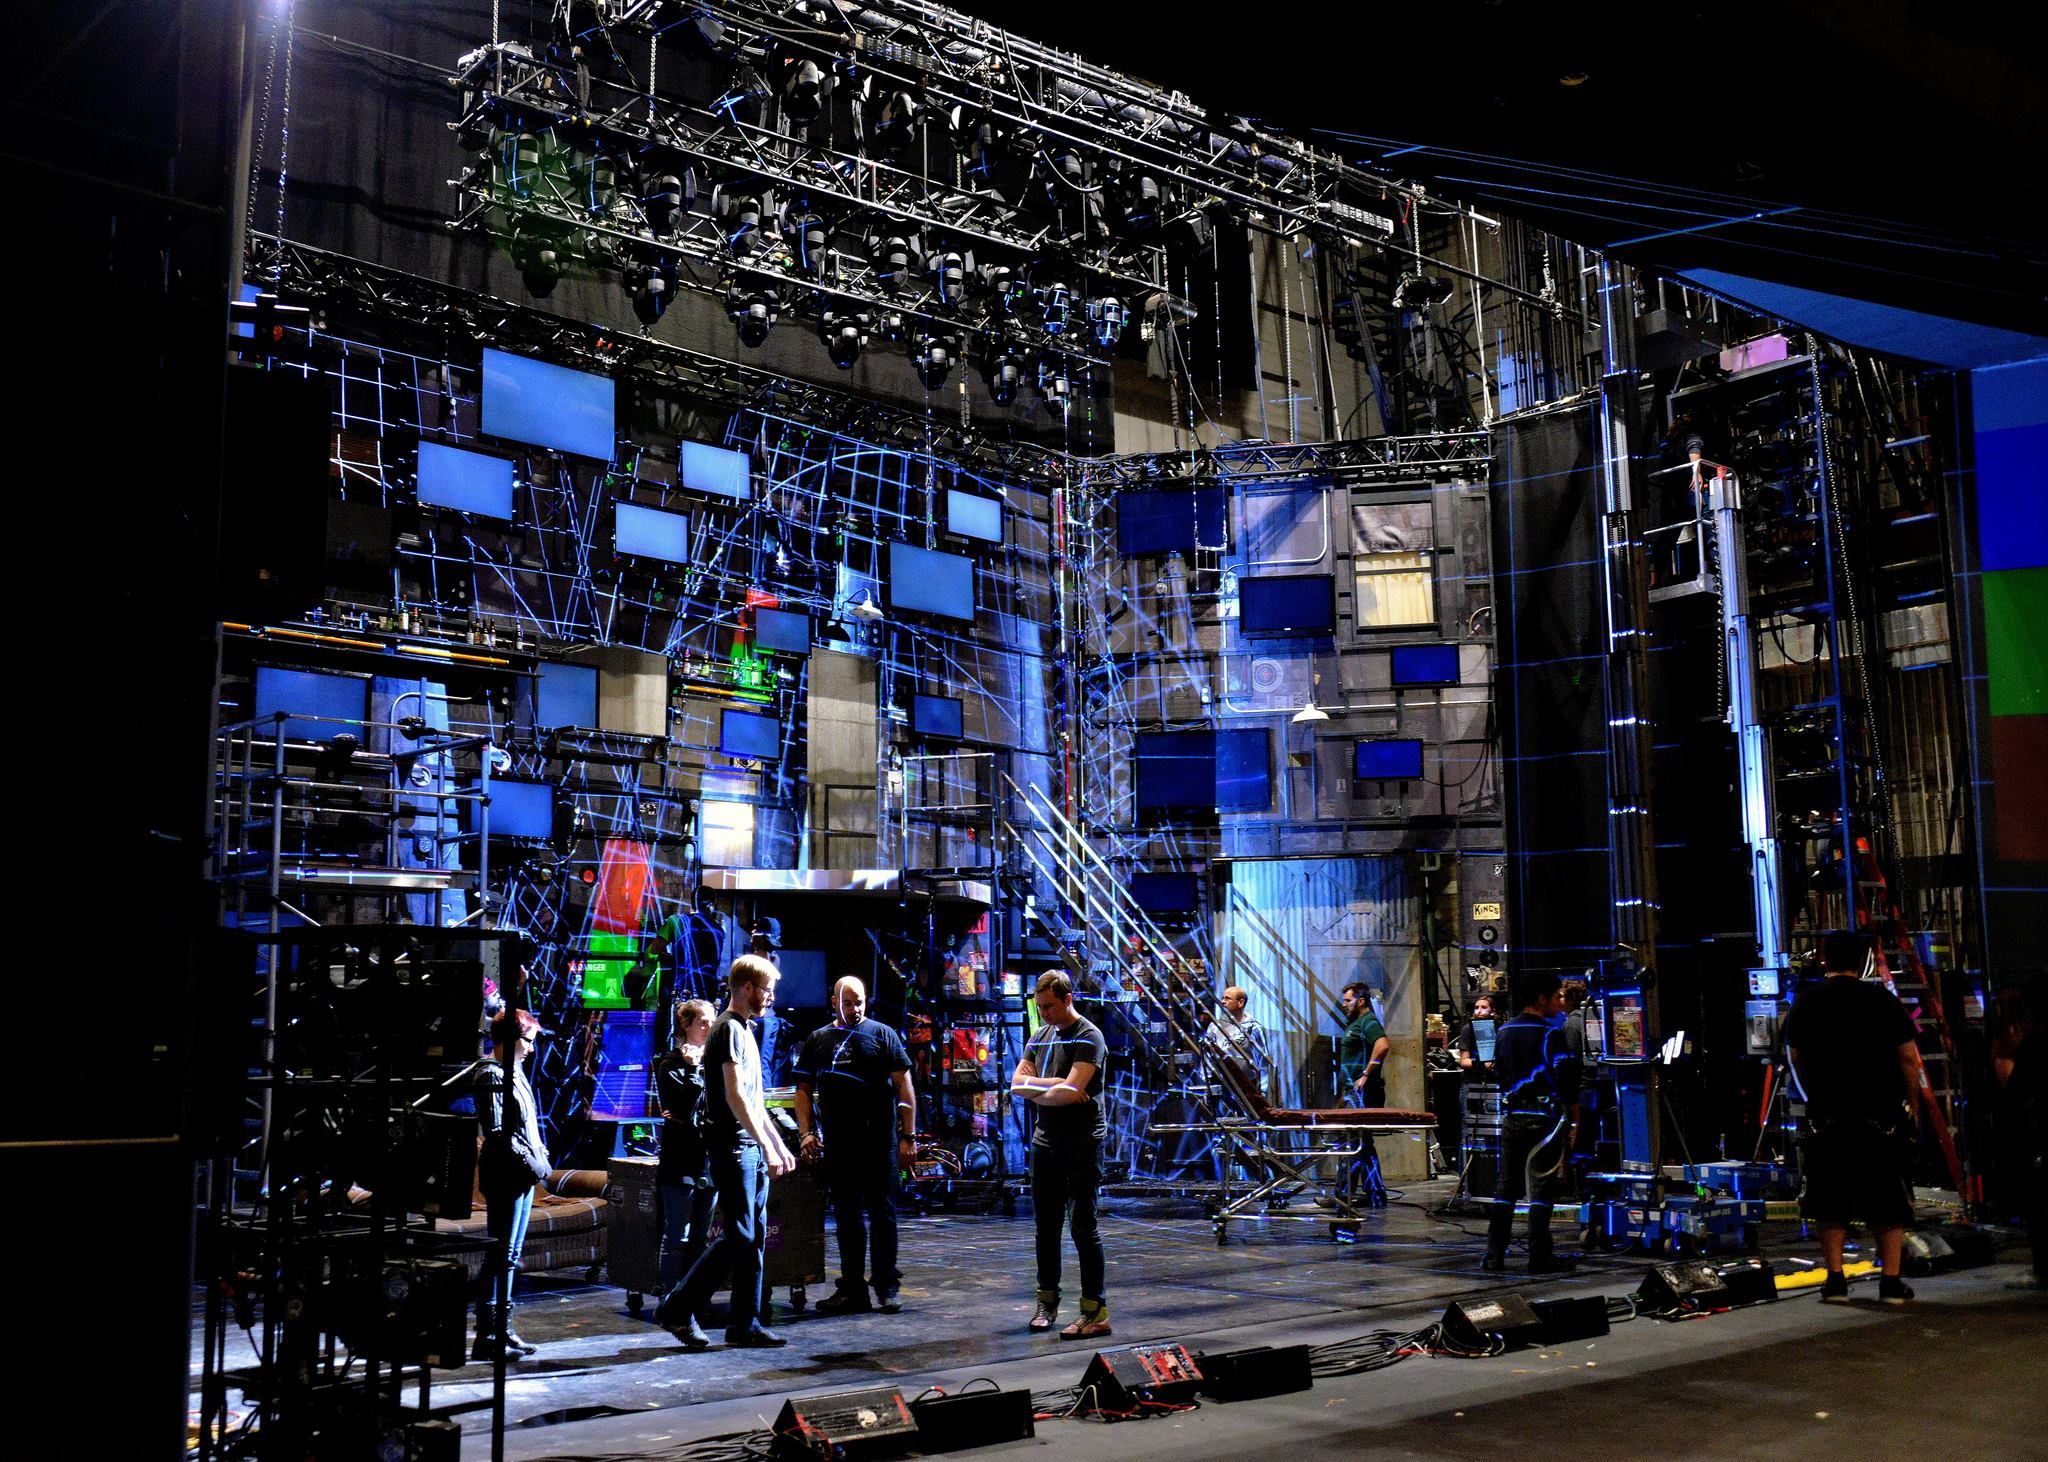 A group of stagehands stand at the center of a stage decorated with several large, blue screens surrounding them